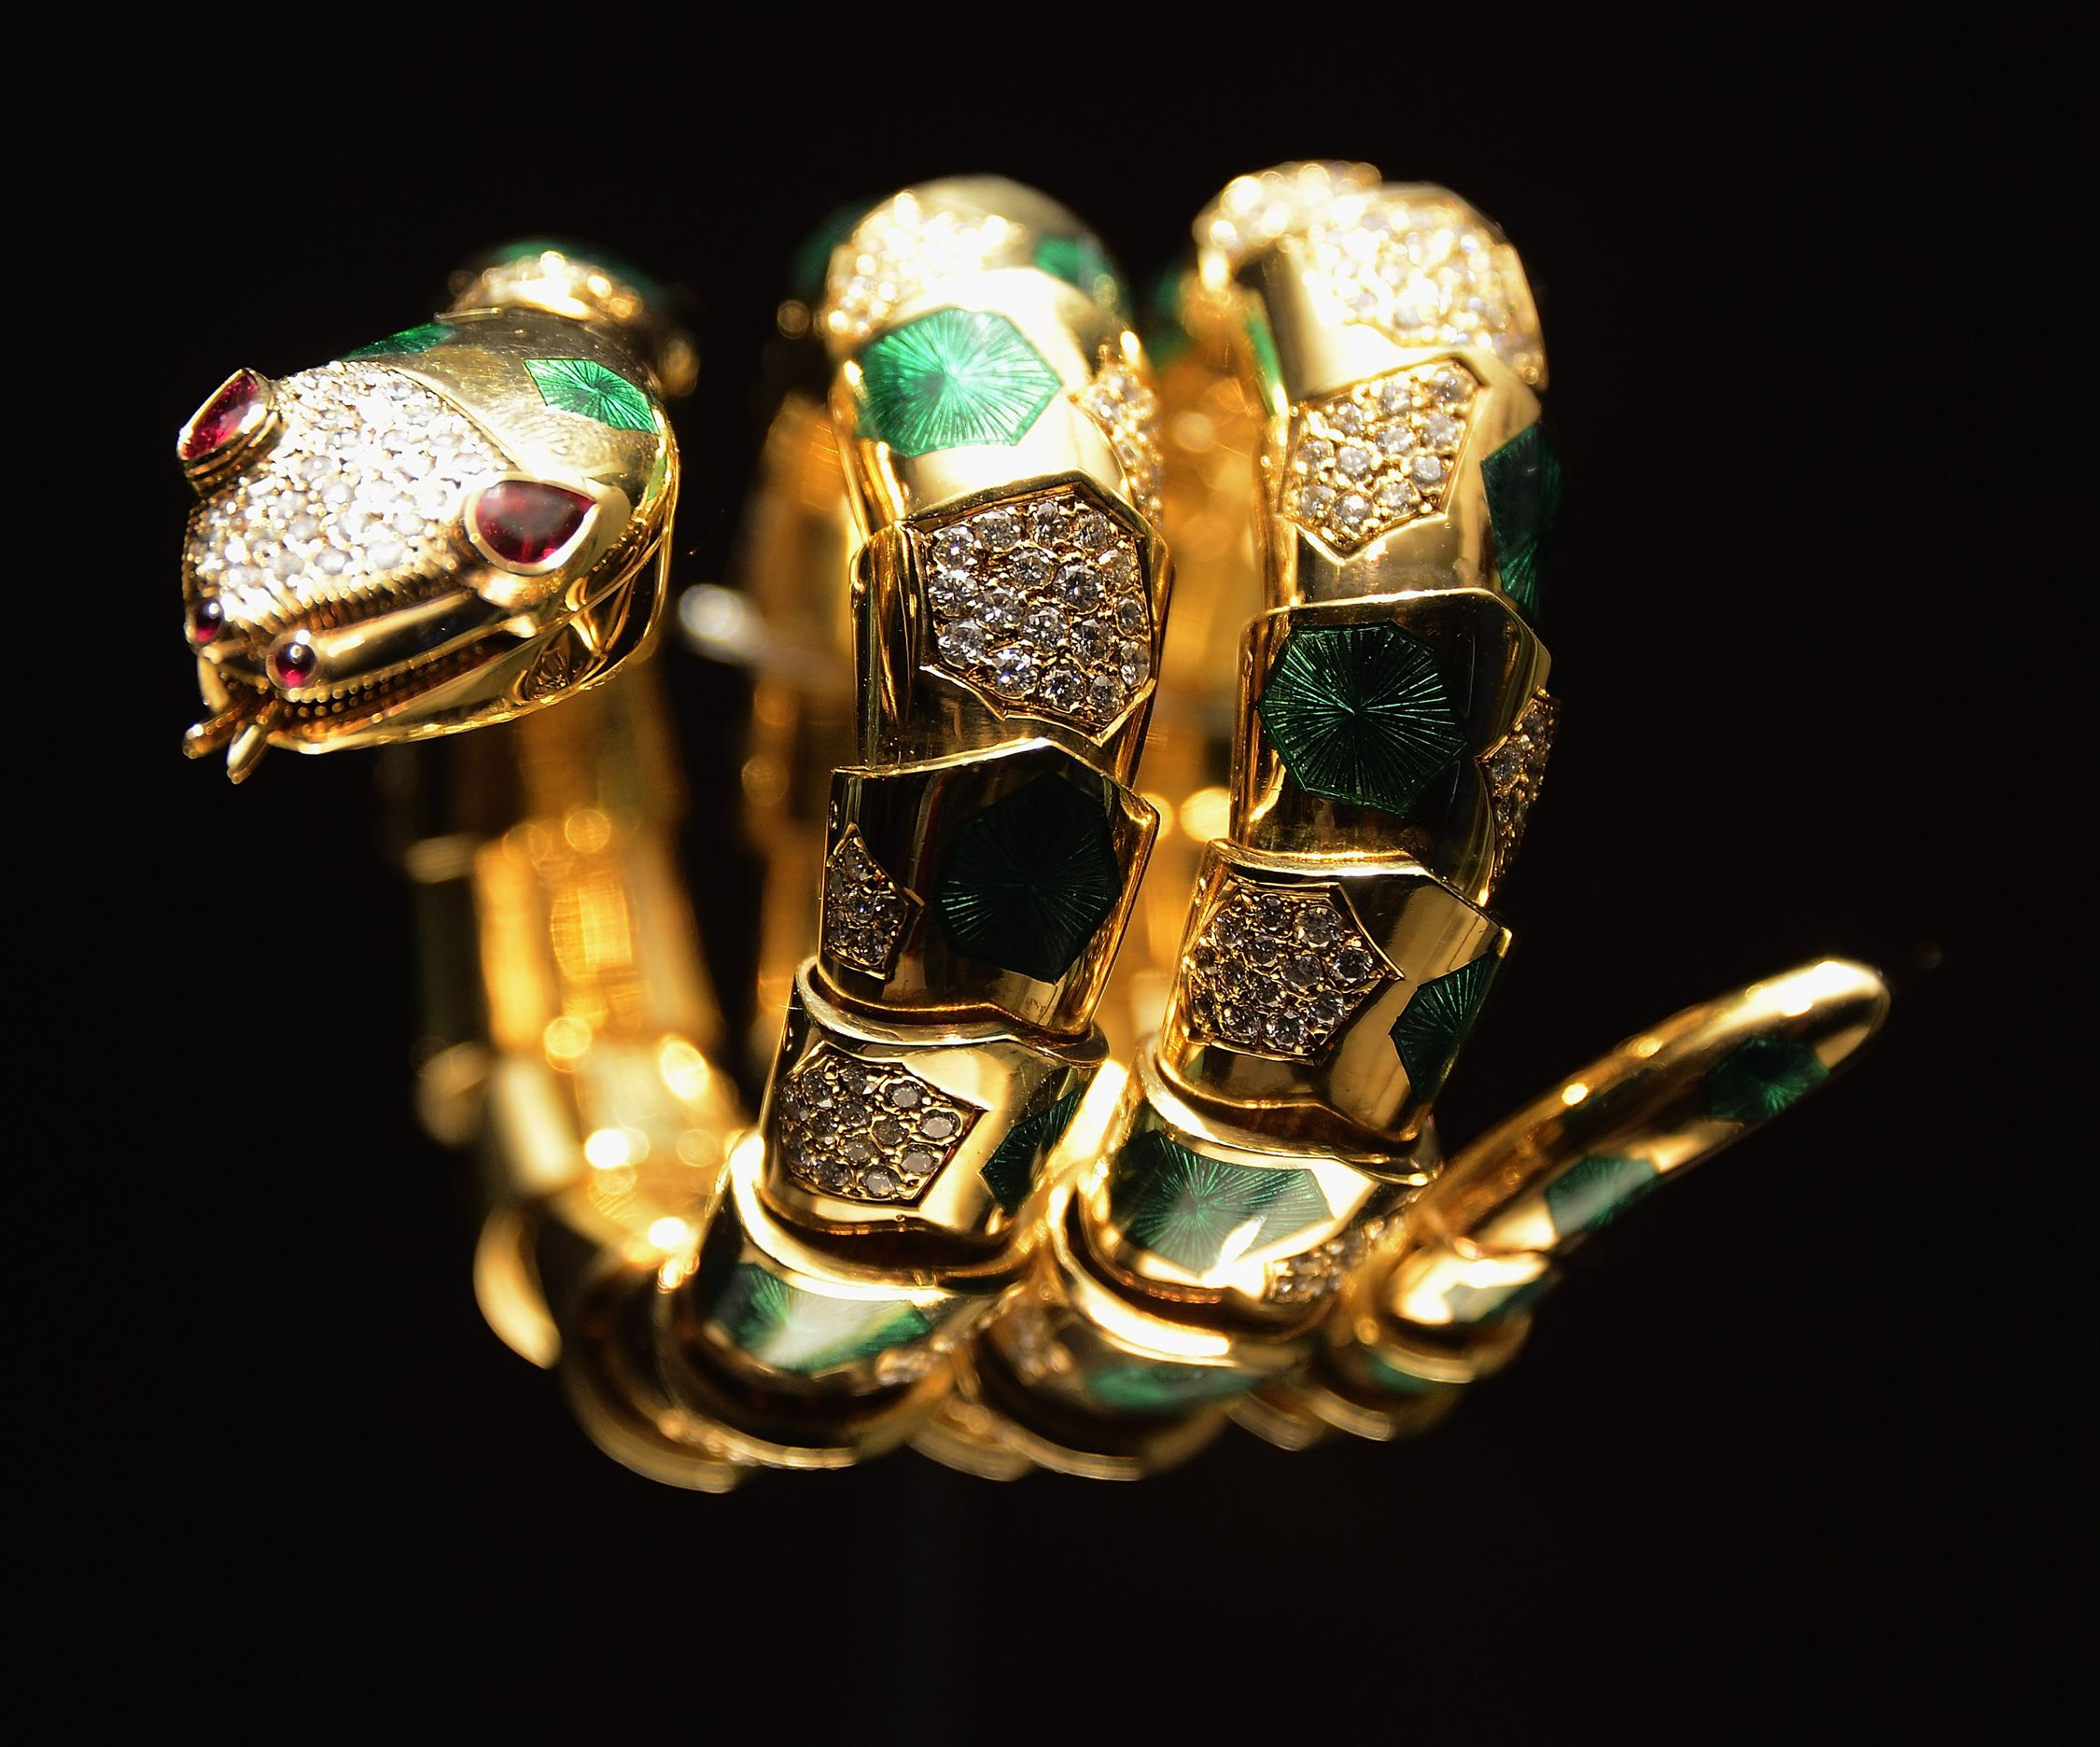 LSA Heritage Series: Why Bulgari's Serpenti is one of the most iconic jewellery designs